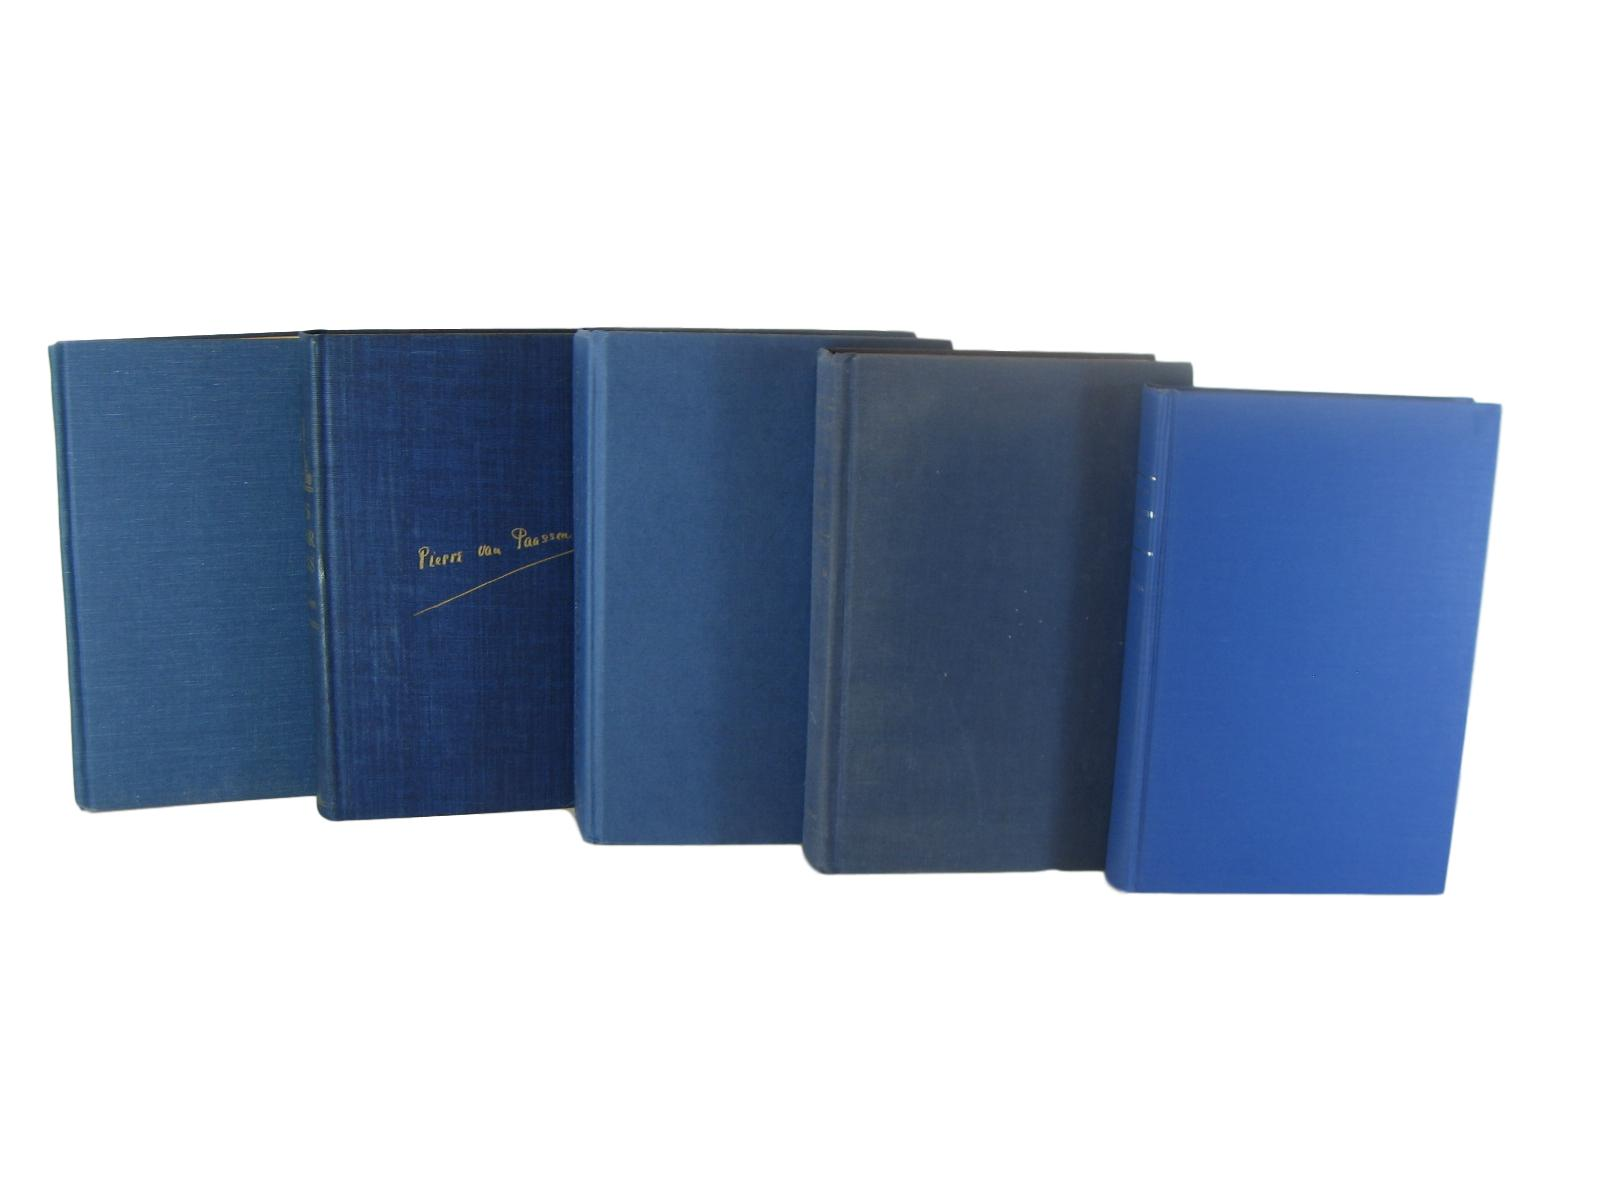 Blue Decorative Books for  Vintage Book Decor, S/5 - Decades of Vintage